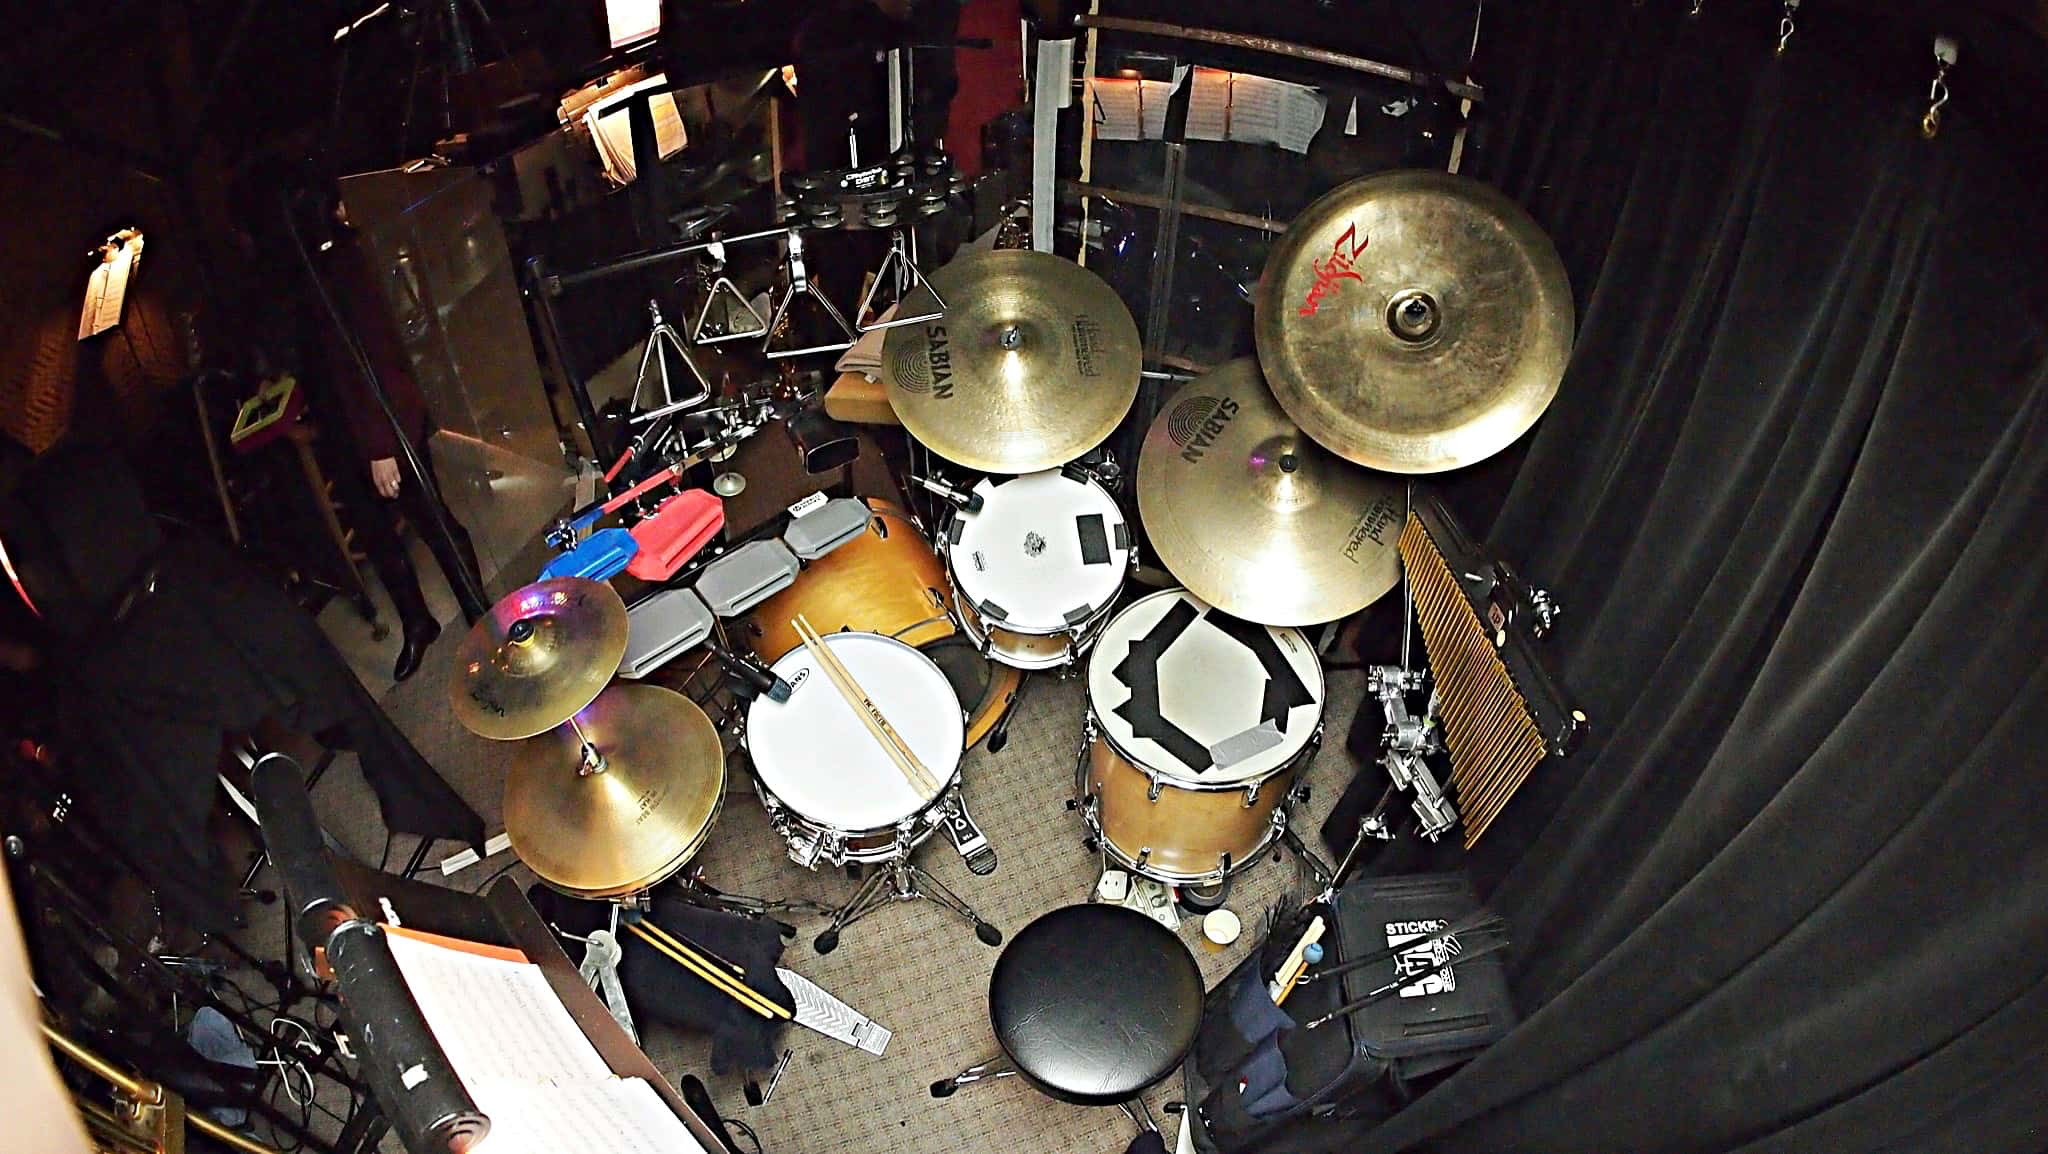 Chris Monroe's drum set setup for Mary Poppins at the Village Theatre in Everett, Washington.